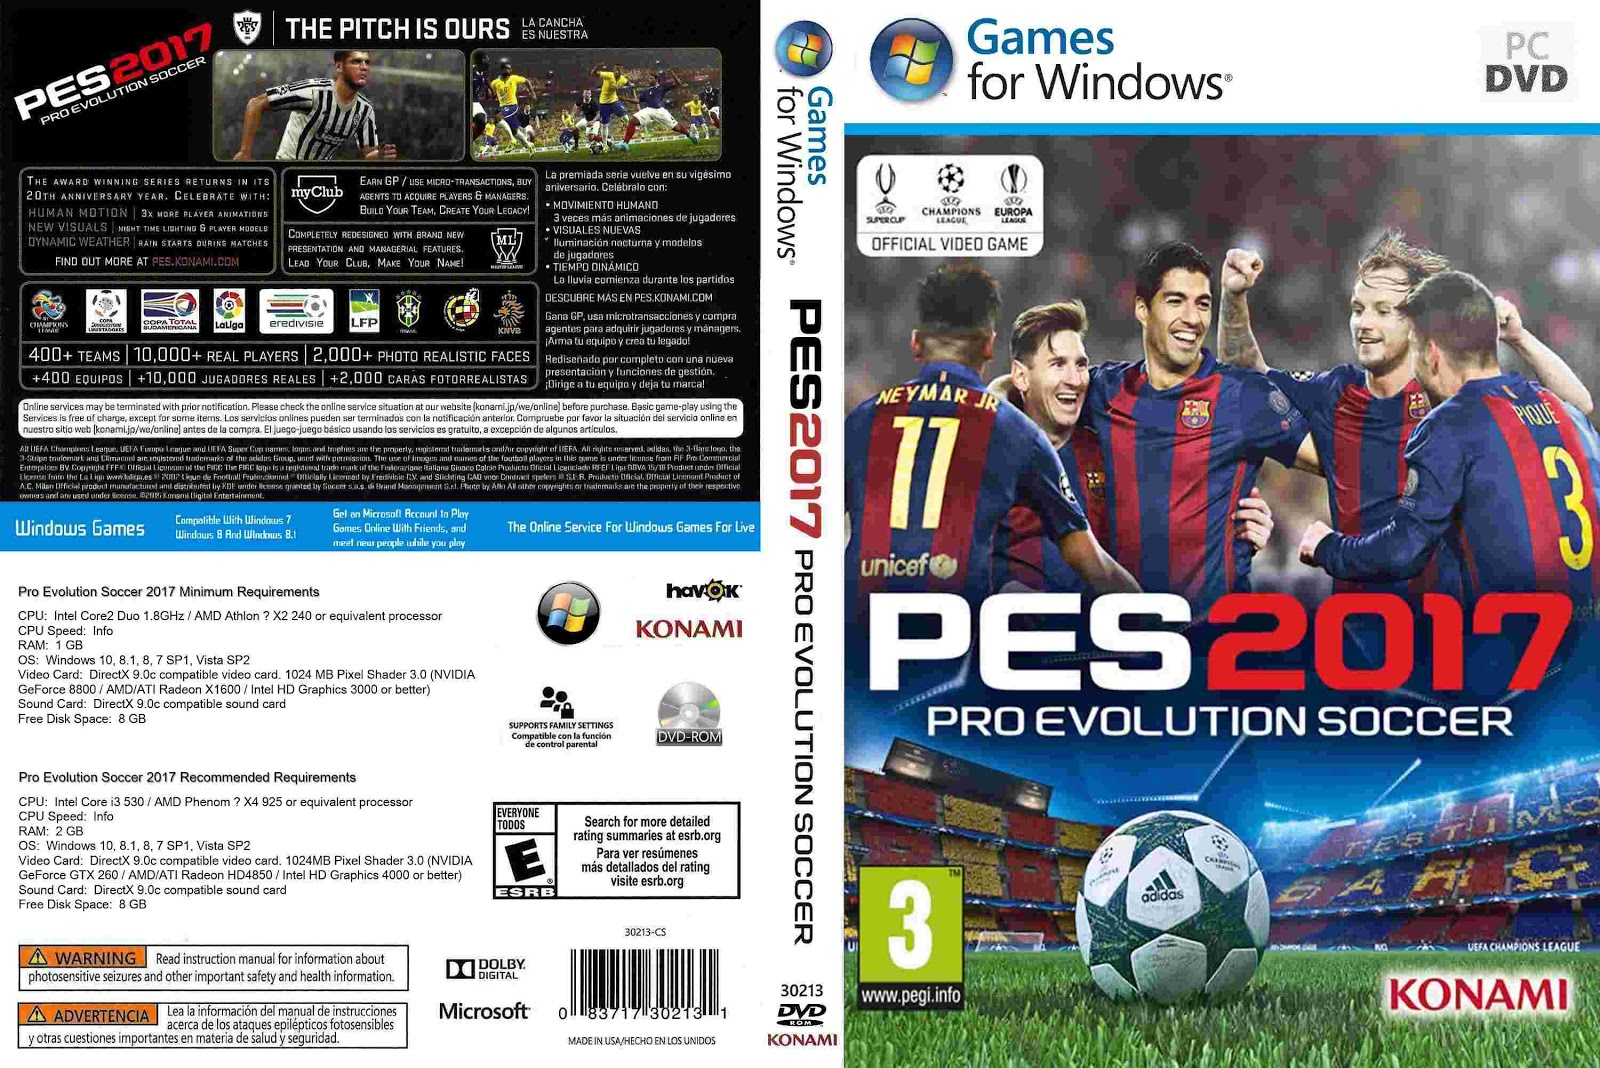 Download Pro Evolution Soccer 2017 PC Download Pro Evolution Soccer 2017 PC Pro Evolution Soccer 2017 CUSTOM   Capa PC Game